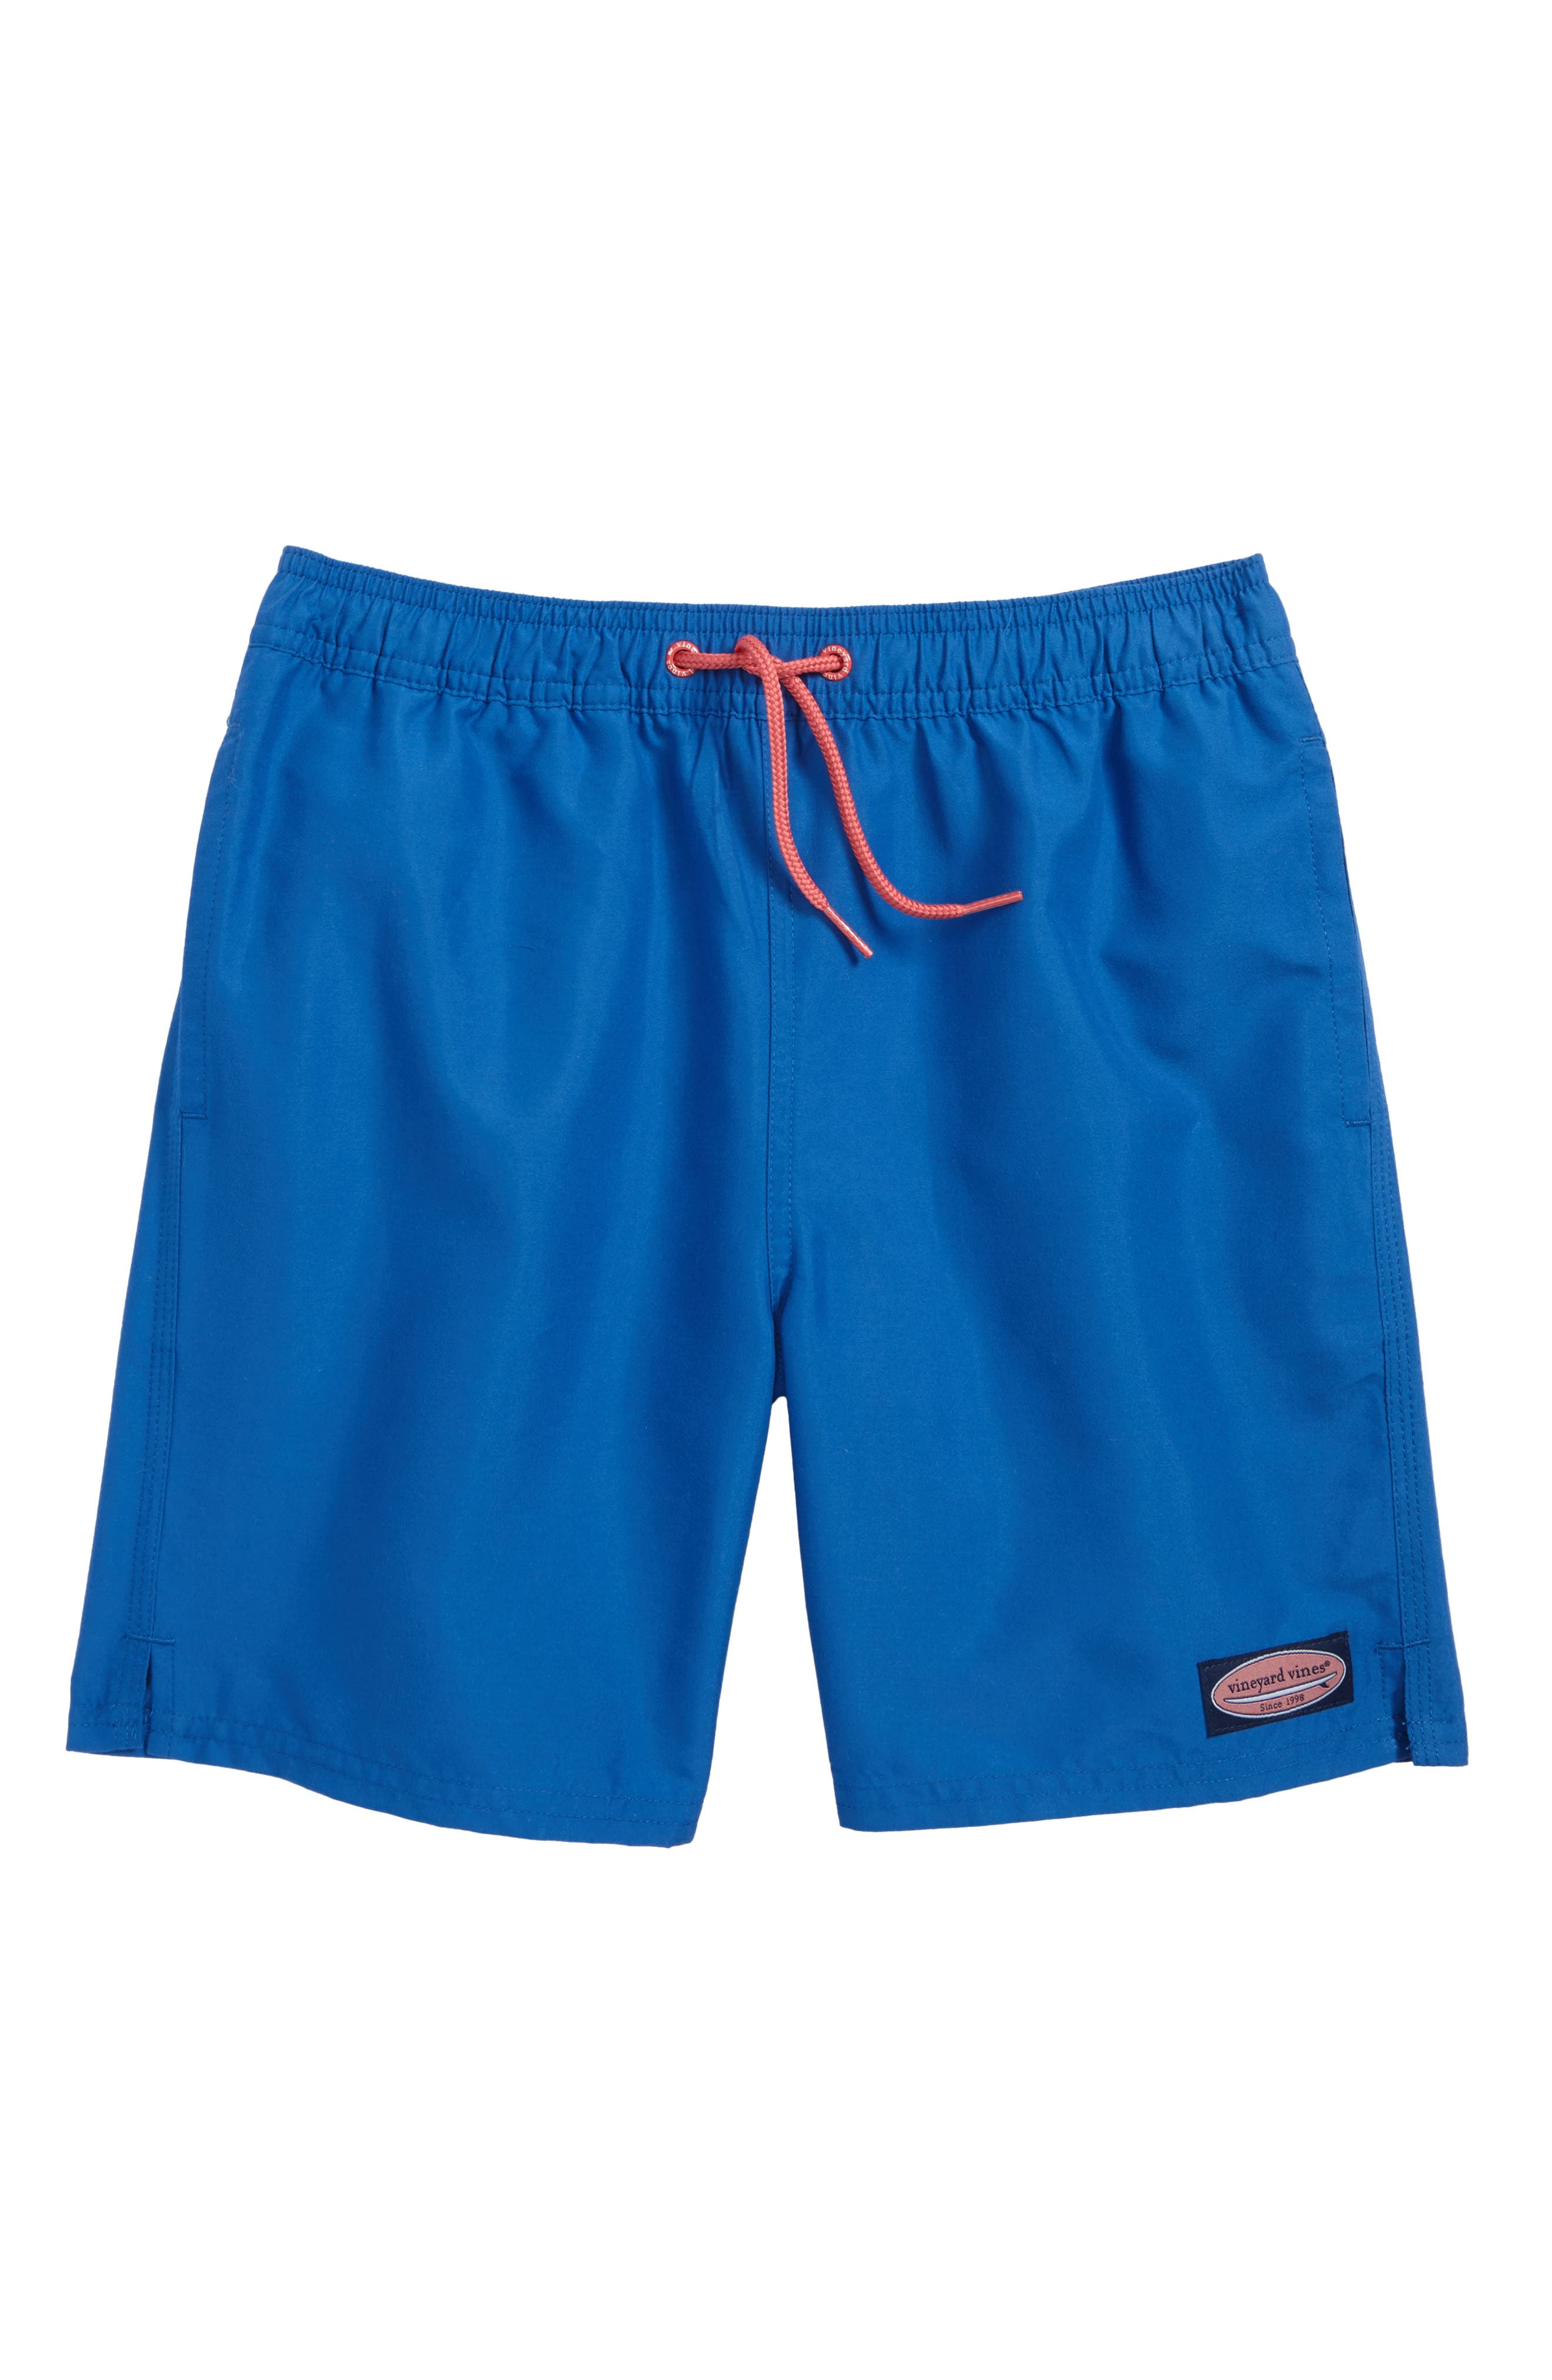 Bungalow Board Shorts,                         Main,                         color, 413